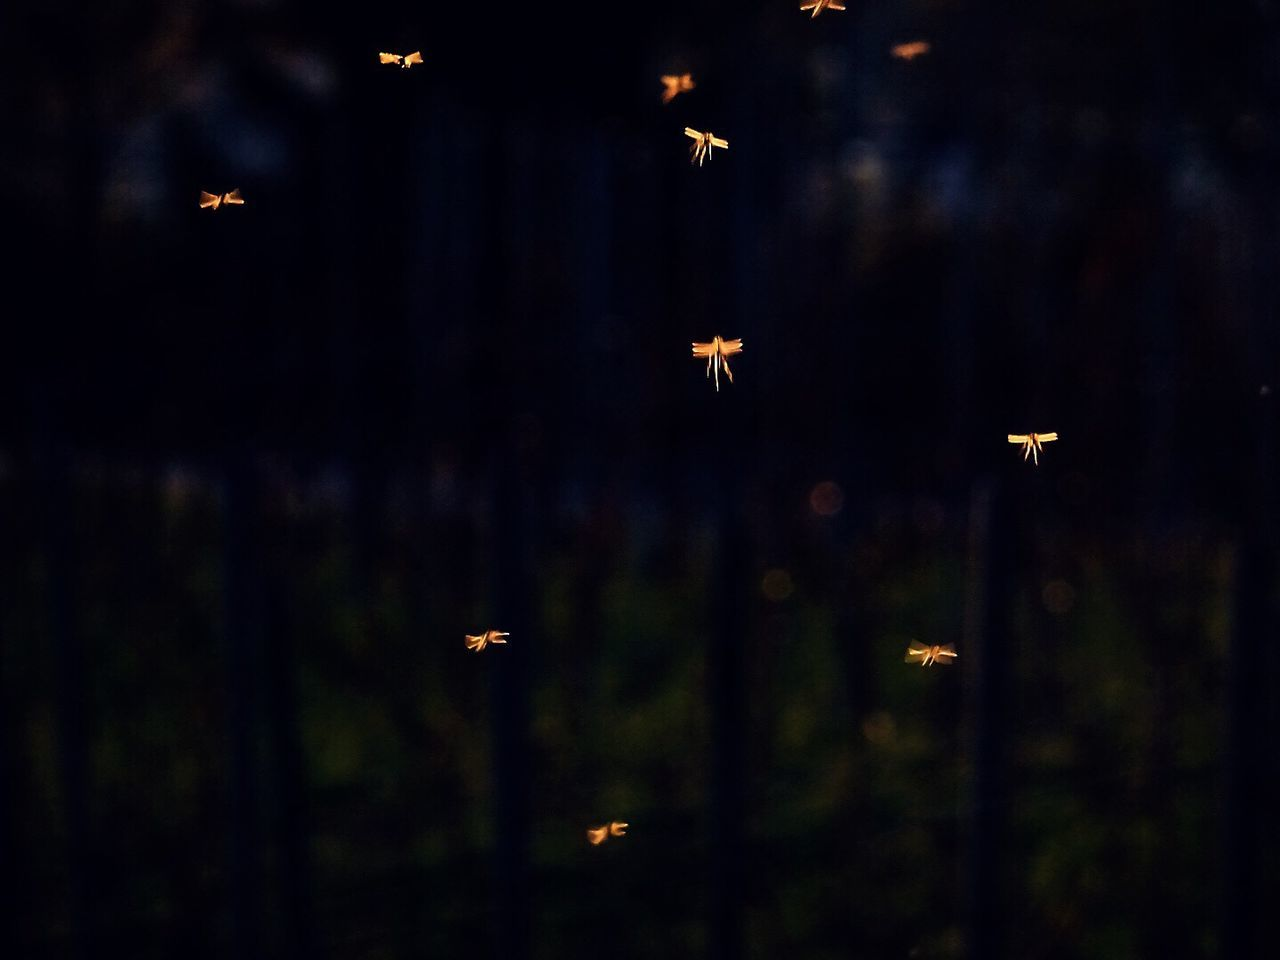 Mosquito Flying Animal Themes No People Animals In The Wild Outdoors Bird Airplane Nature Night Close-up Exceptional Photographs Fine Art Photography Beauty In Nature Animals In The Wild Nature Drastic Edit Flying High